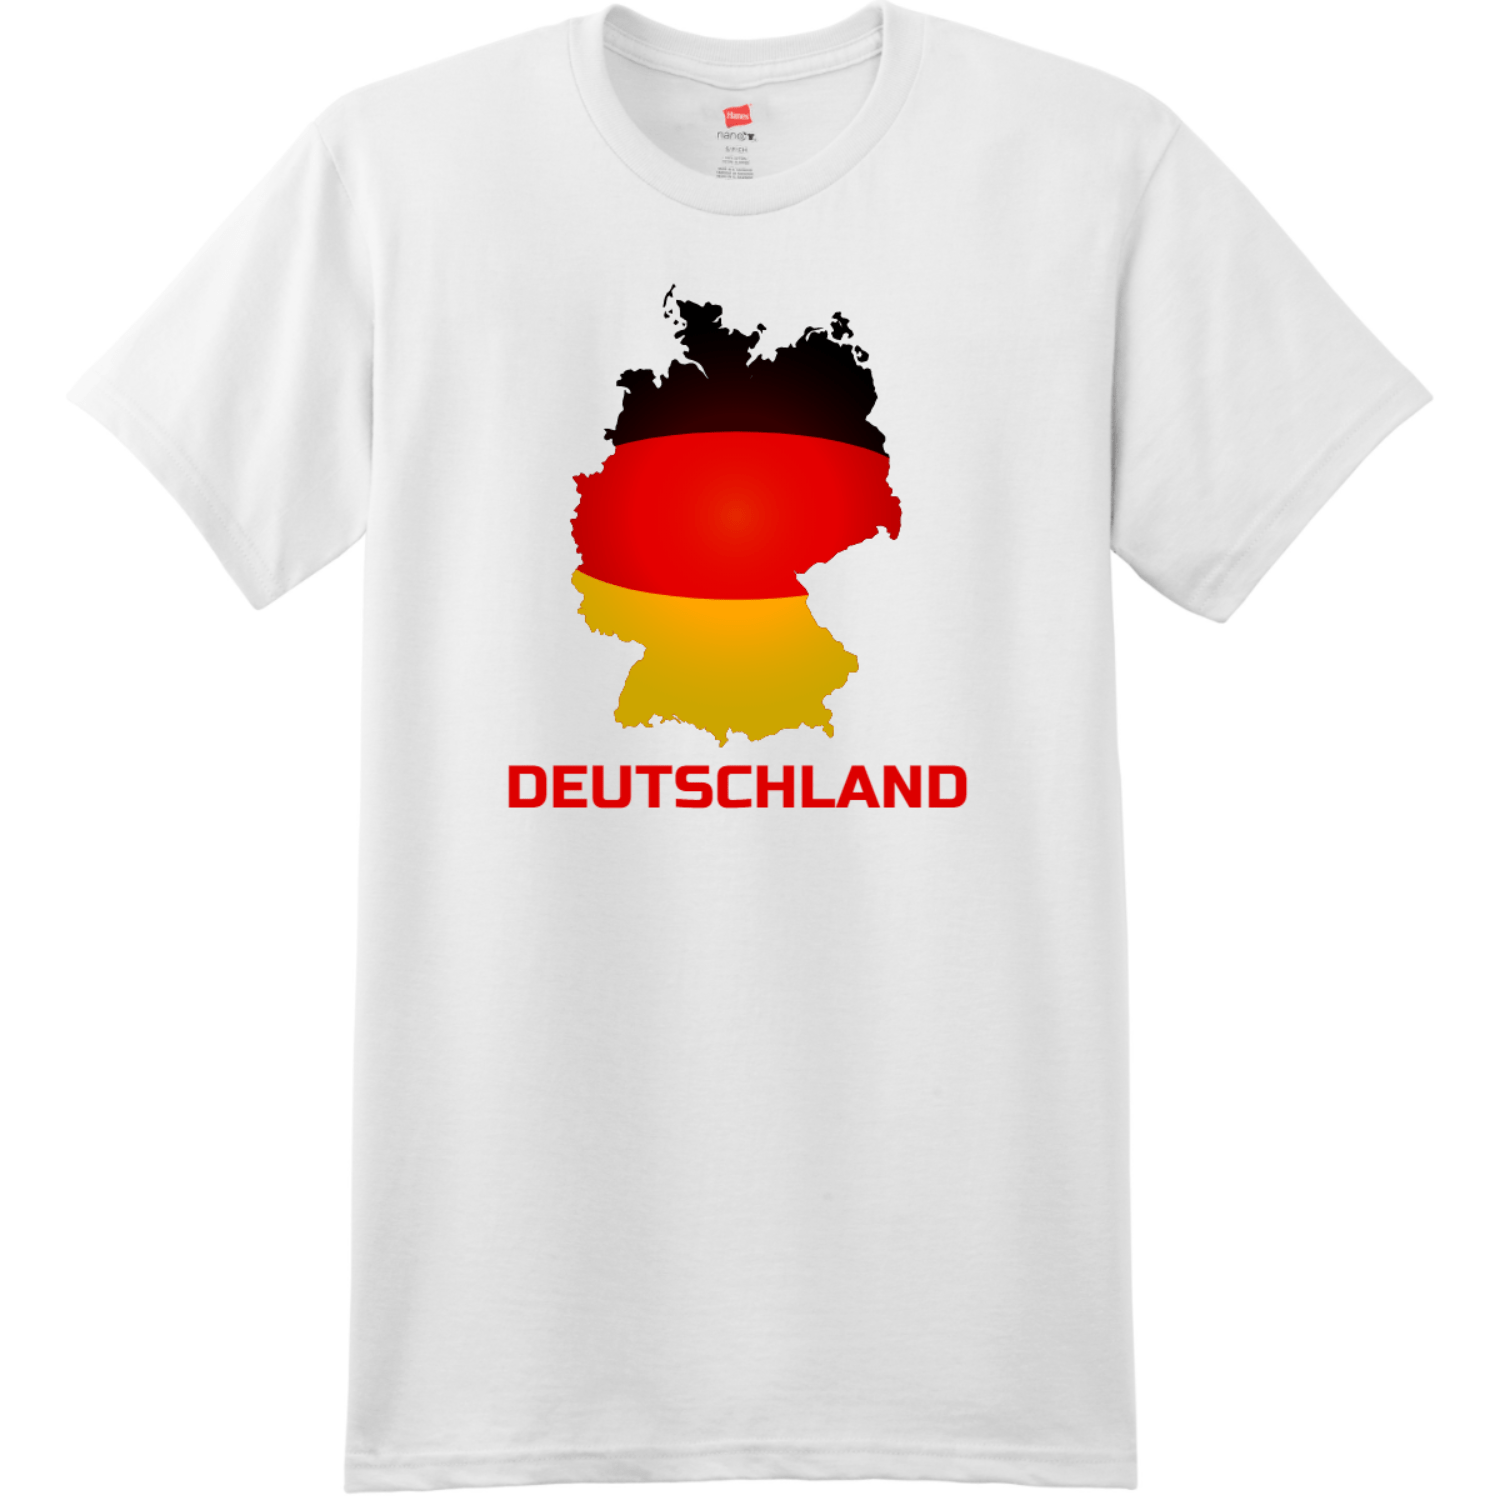 Deutschland Germany T-Shirt White Hanes Nano 4980 Ringspun Cotton T Shirt